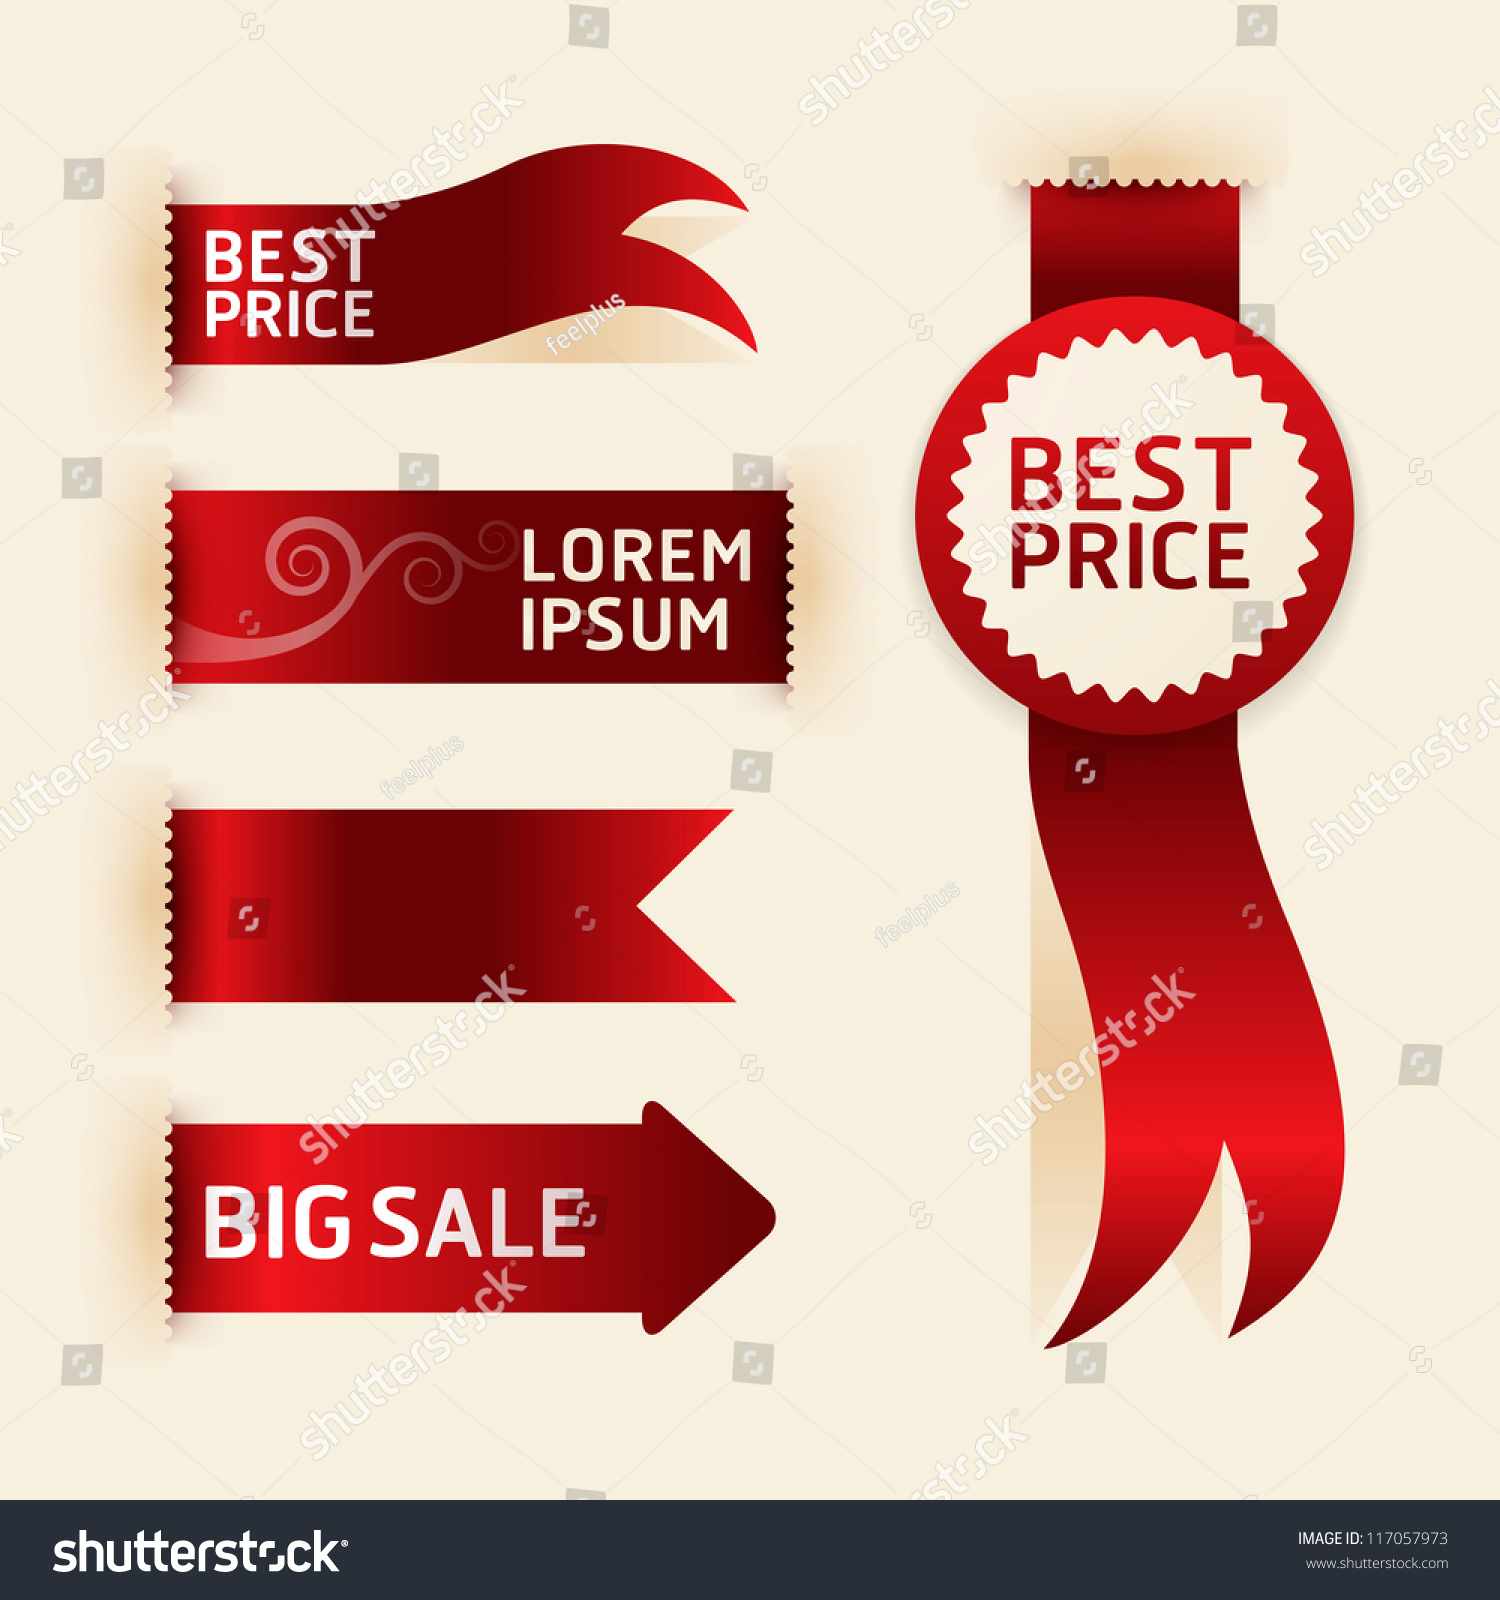 red ribbon promotion products design vector stock vector 117057973